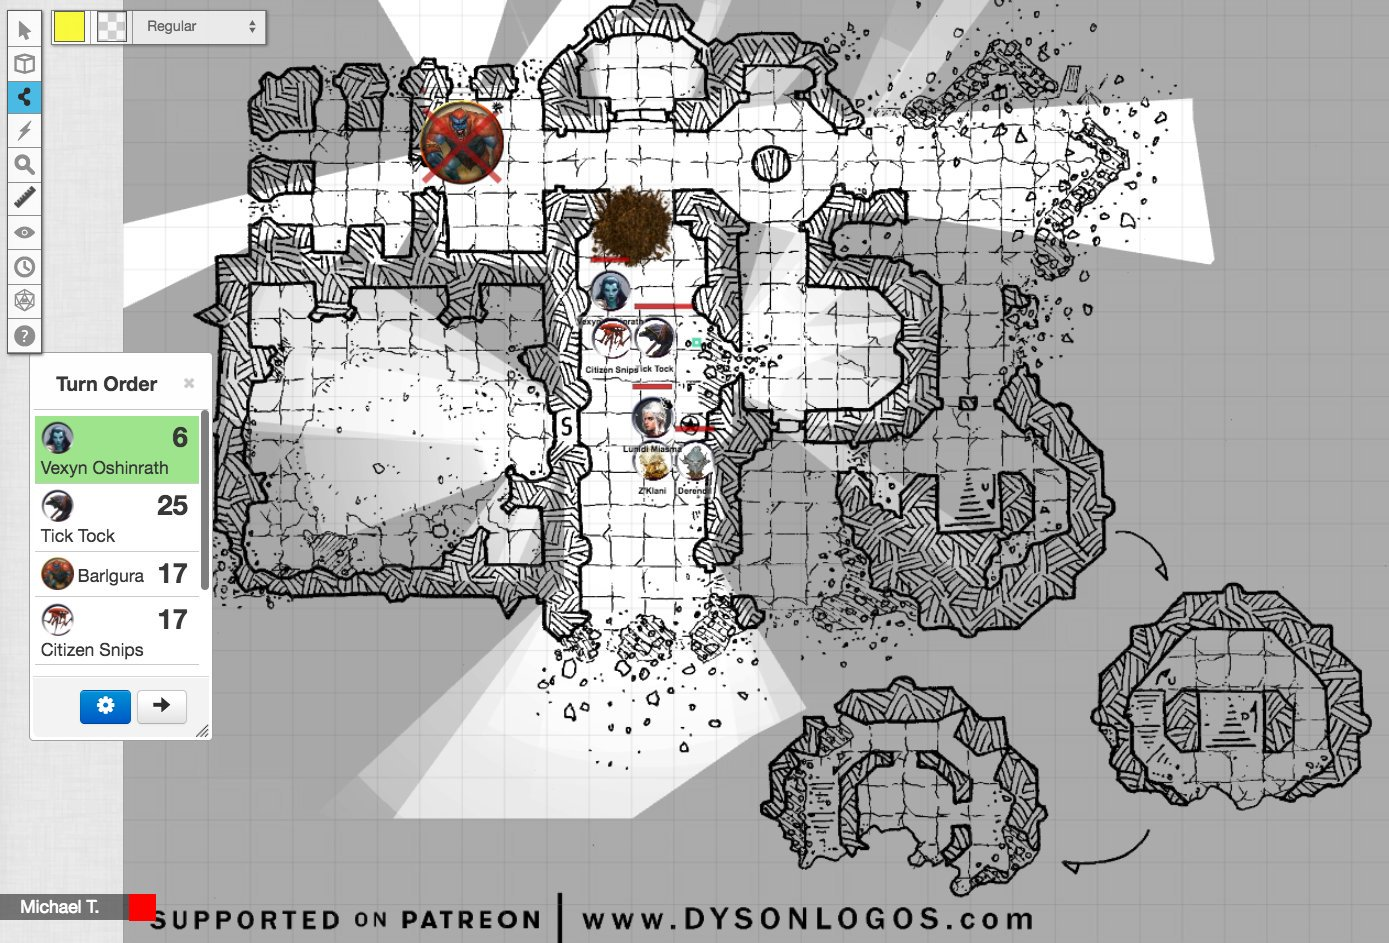 Using Dyson's Dodecahedron maps in Roll20